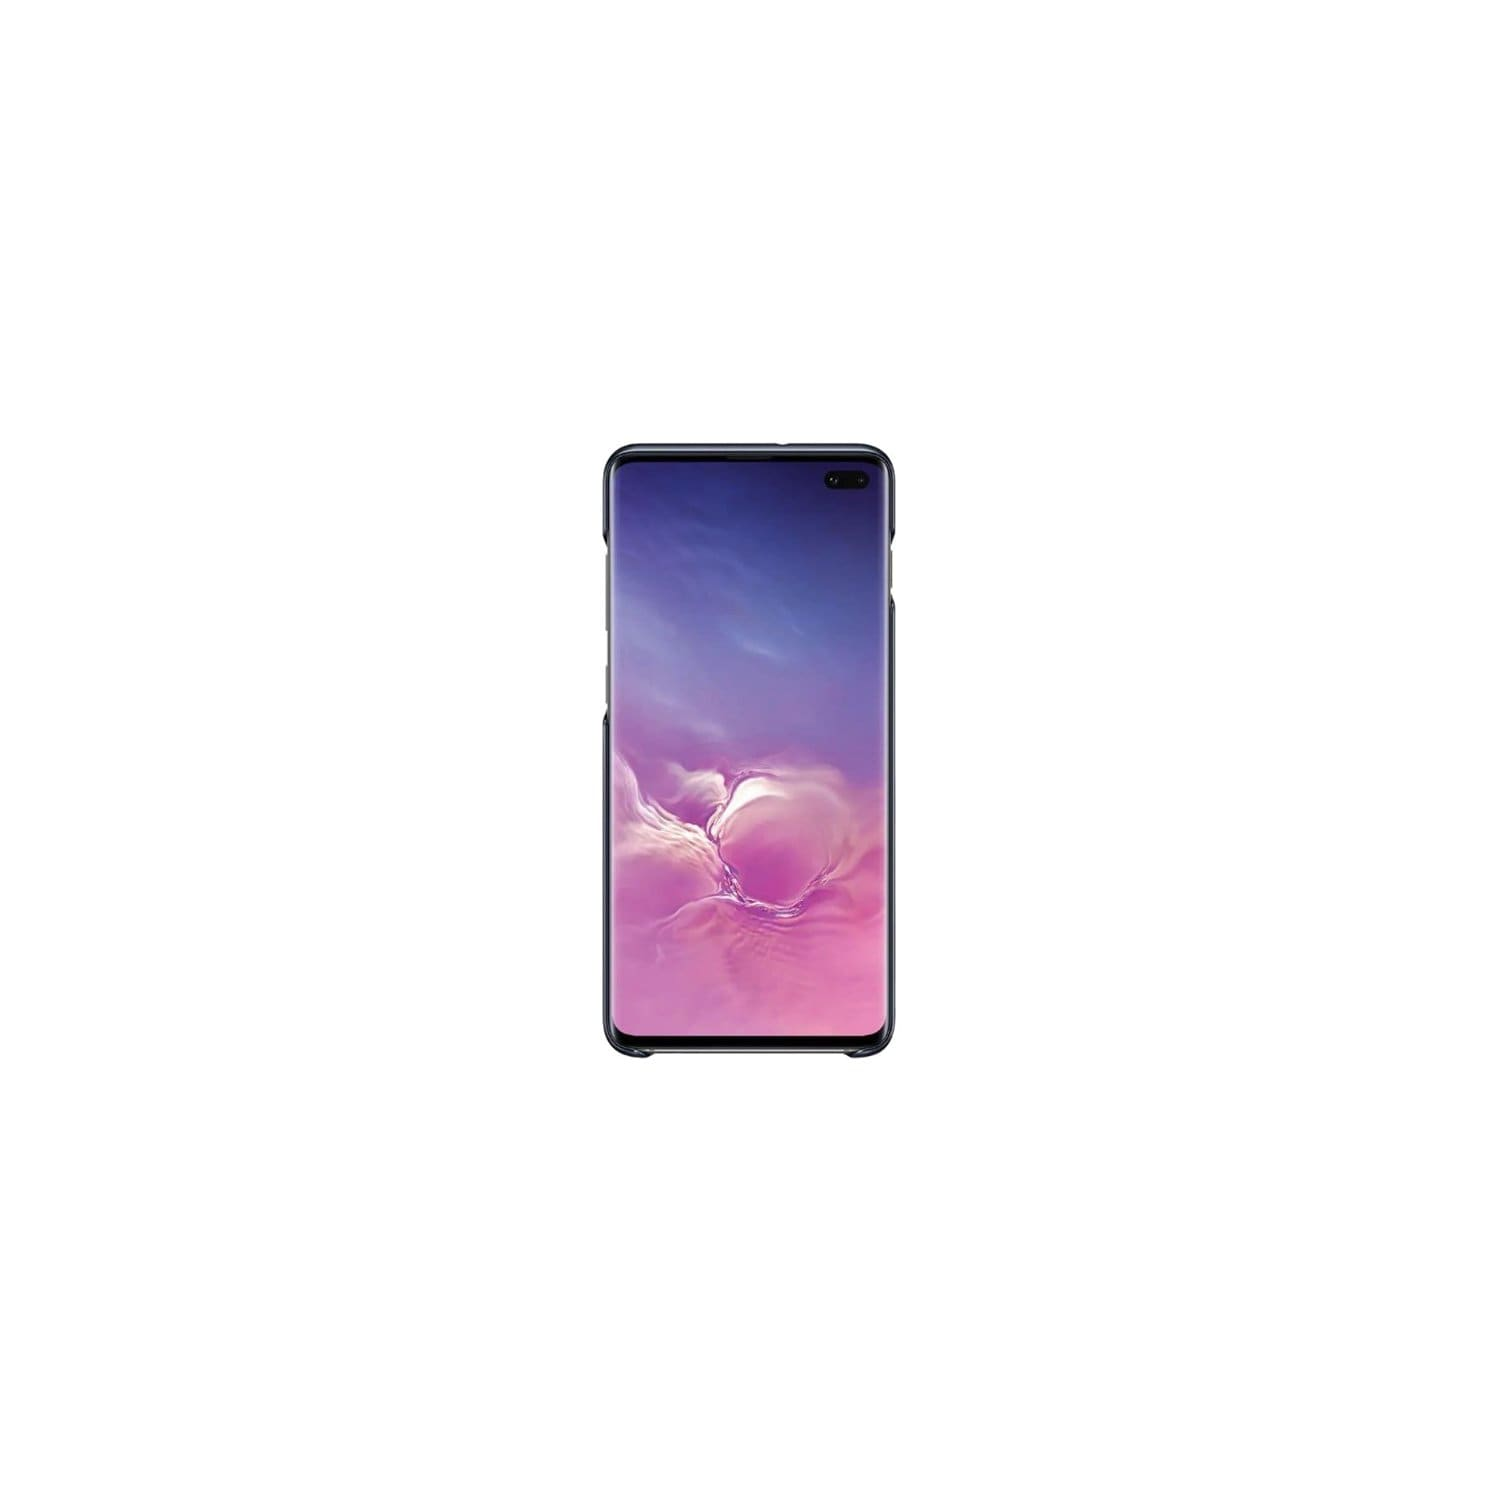 Etui SAMSUNG LED Cover do Galaxy S10 Plus Czarny EF-KG975CBEGWW